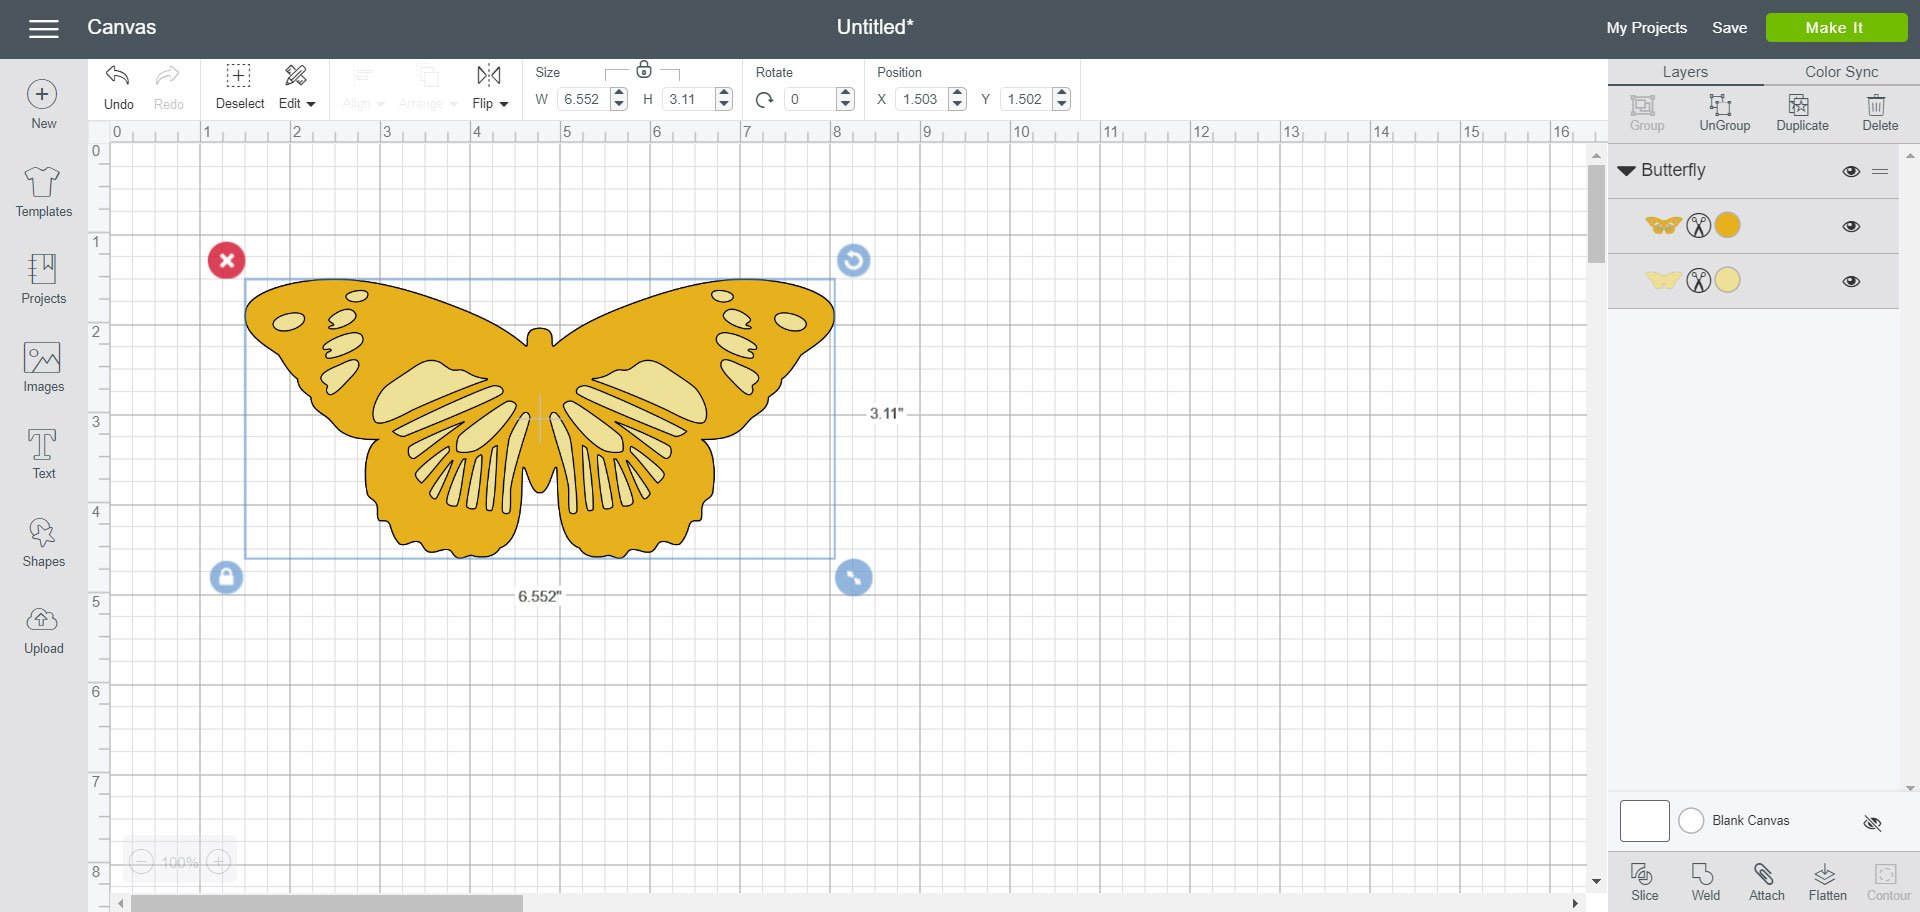 Cricut Design Space - butterfly image added to canvas